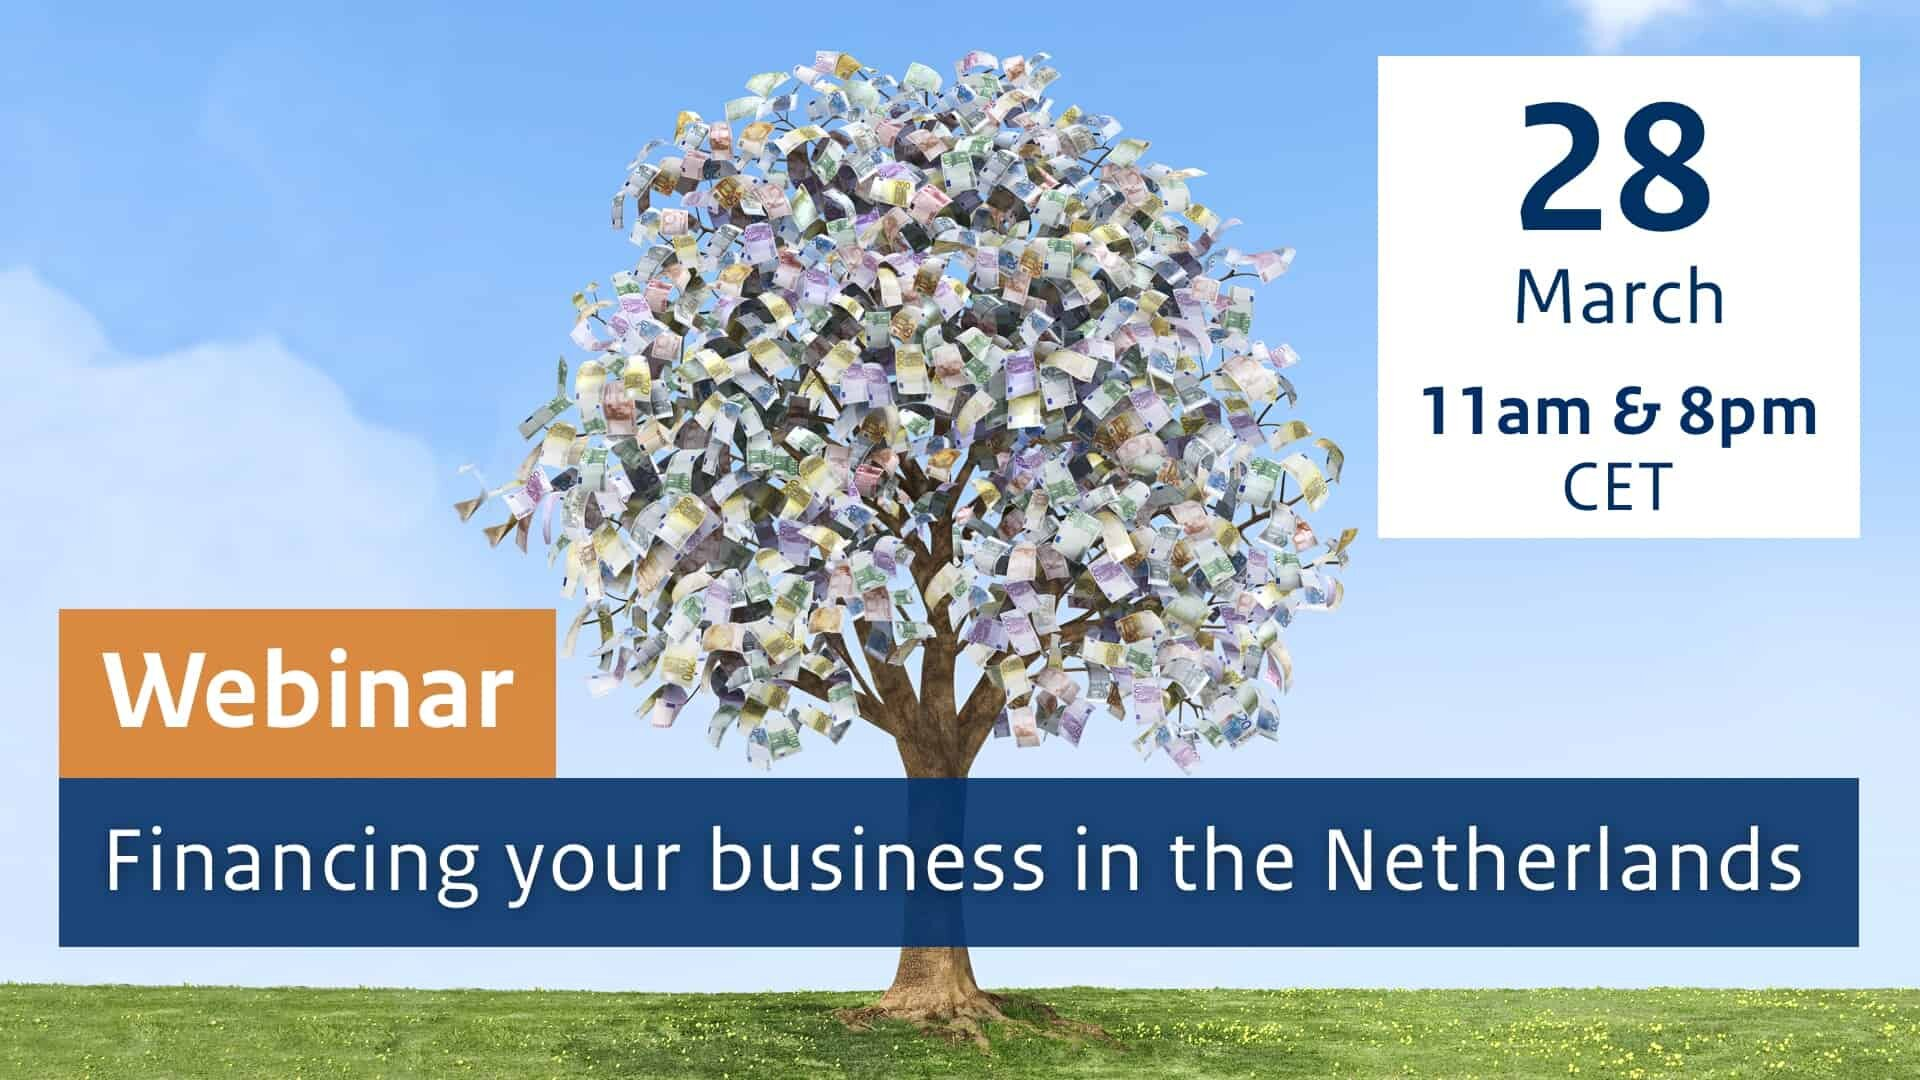 Financing your business in the Netherlands